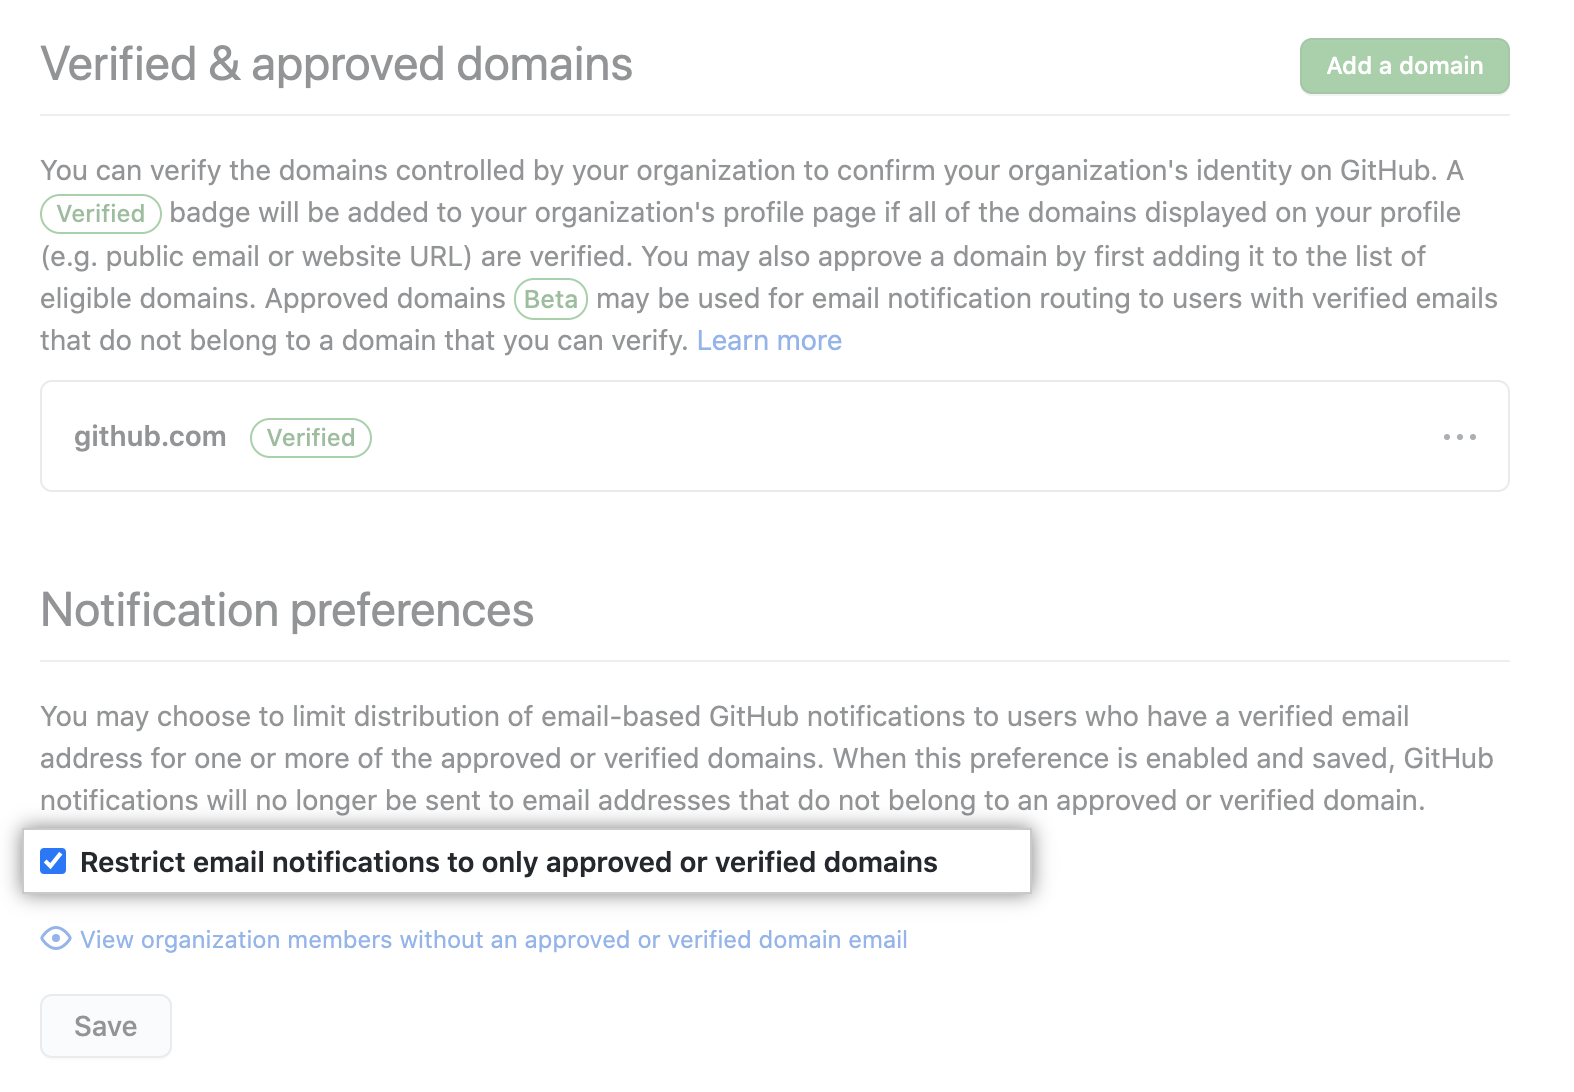 Checkbox to restrict email notifications to verified domain emails